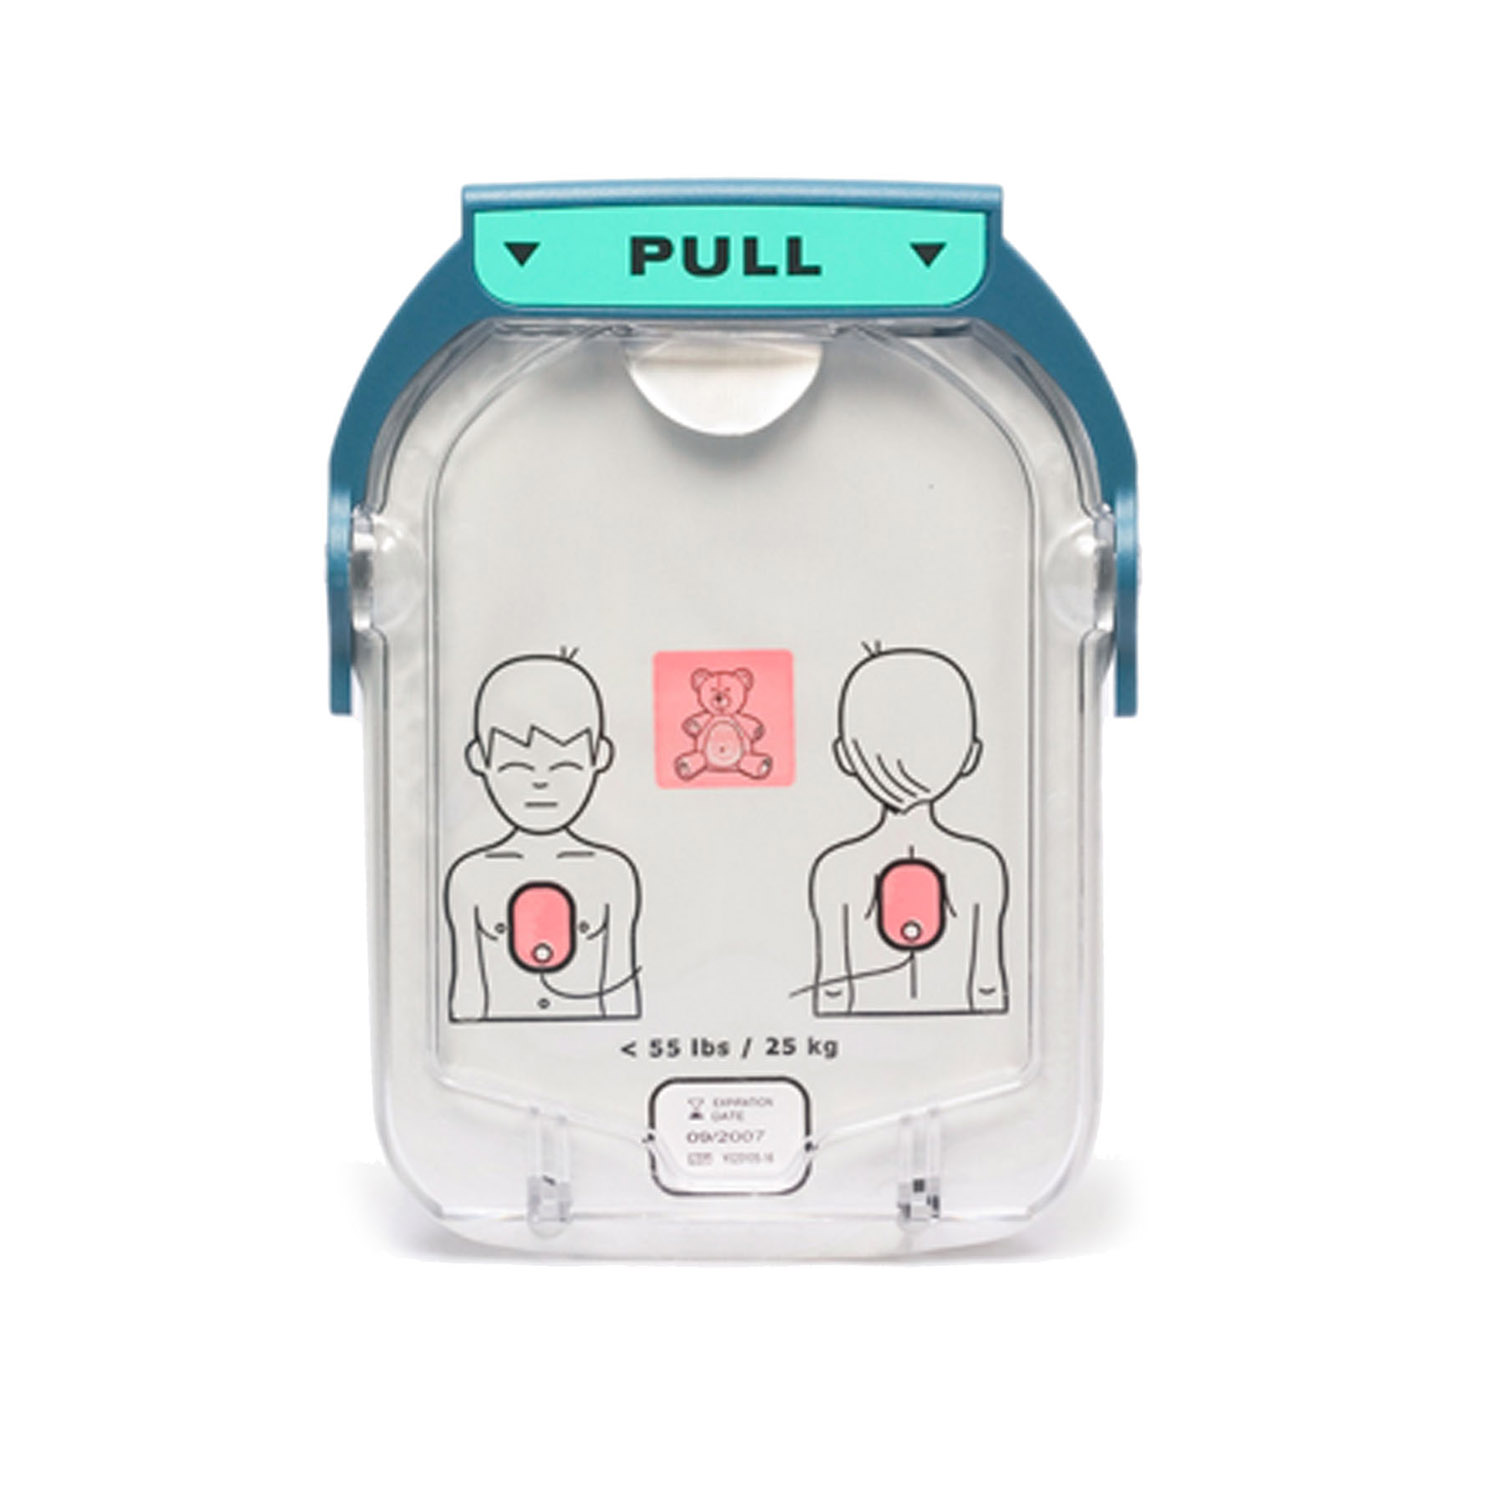 Medic First Aid International OnSite Infant/Child SMART Pads